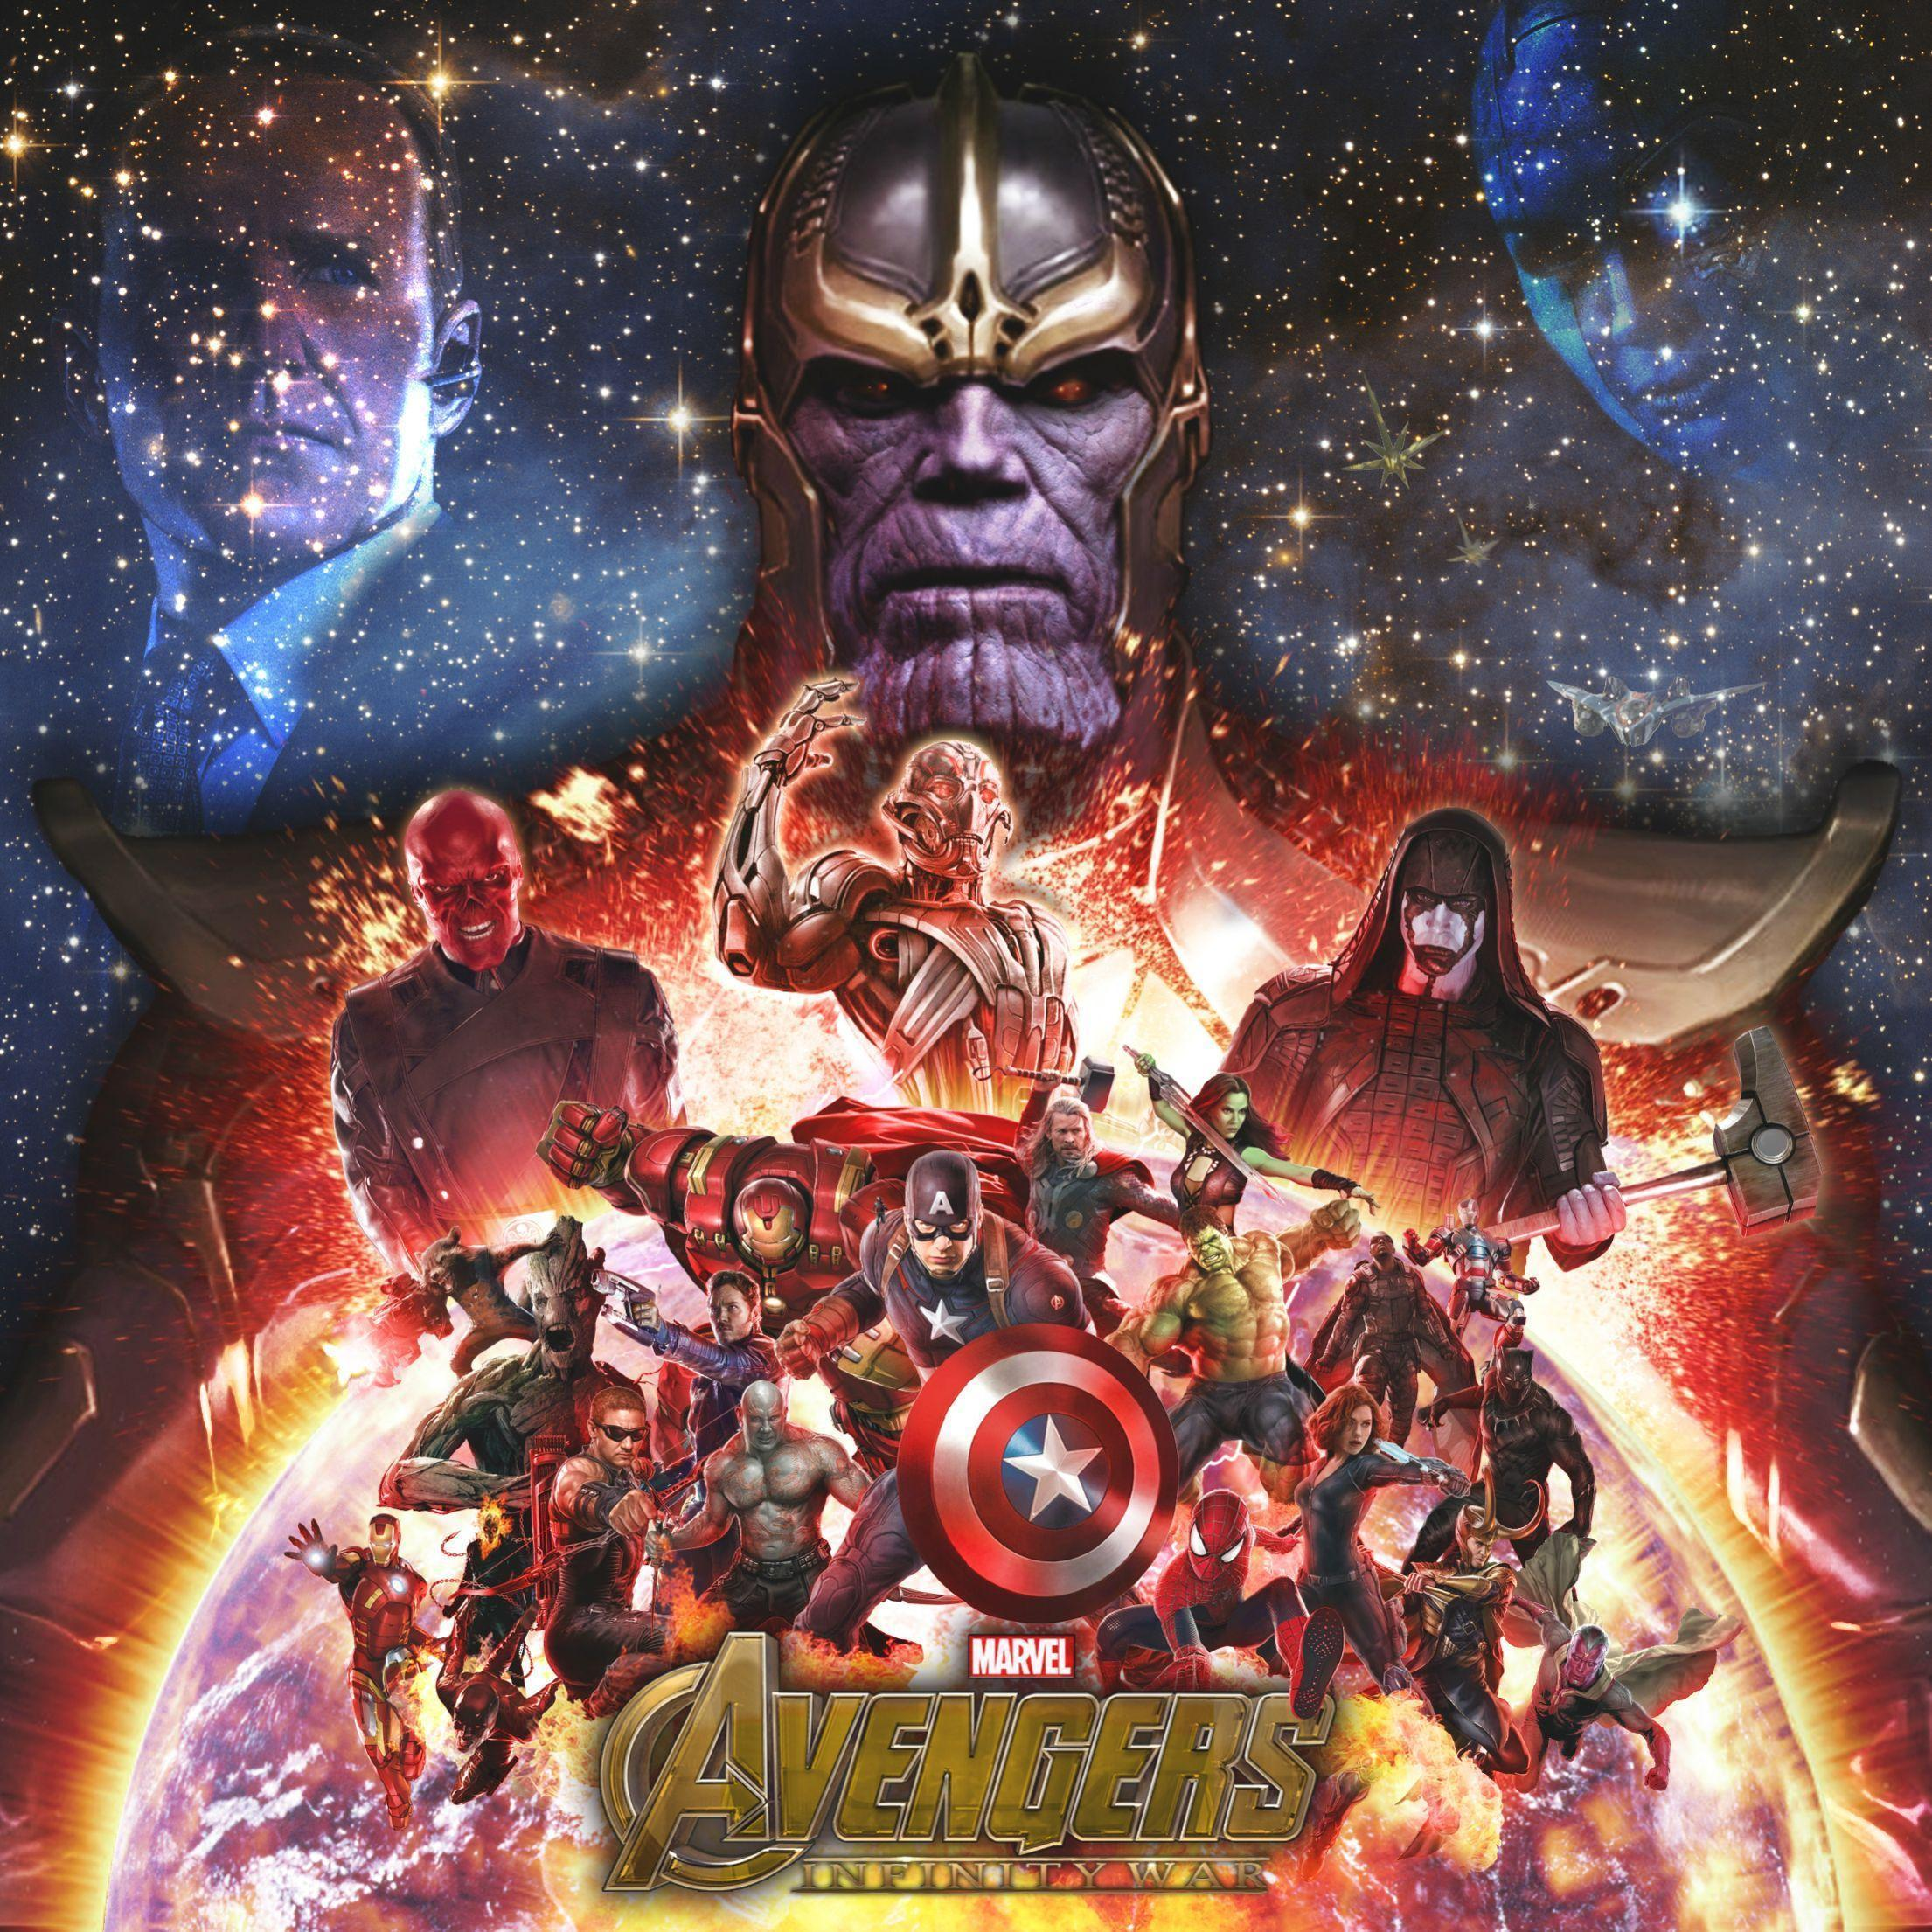 Download full hd wallpaper of avengers infinity war for mobile